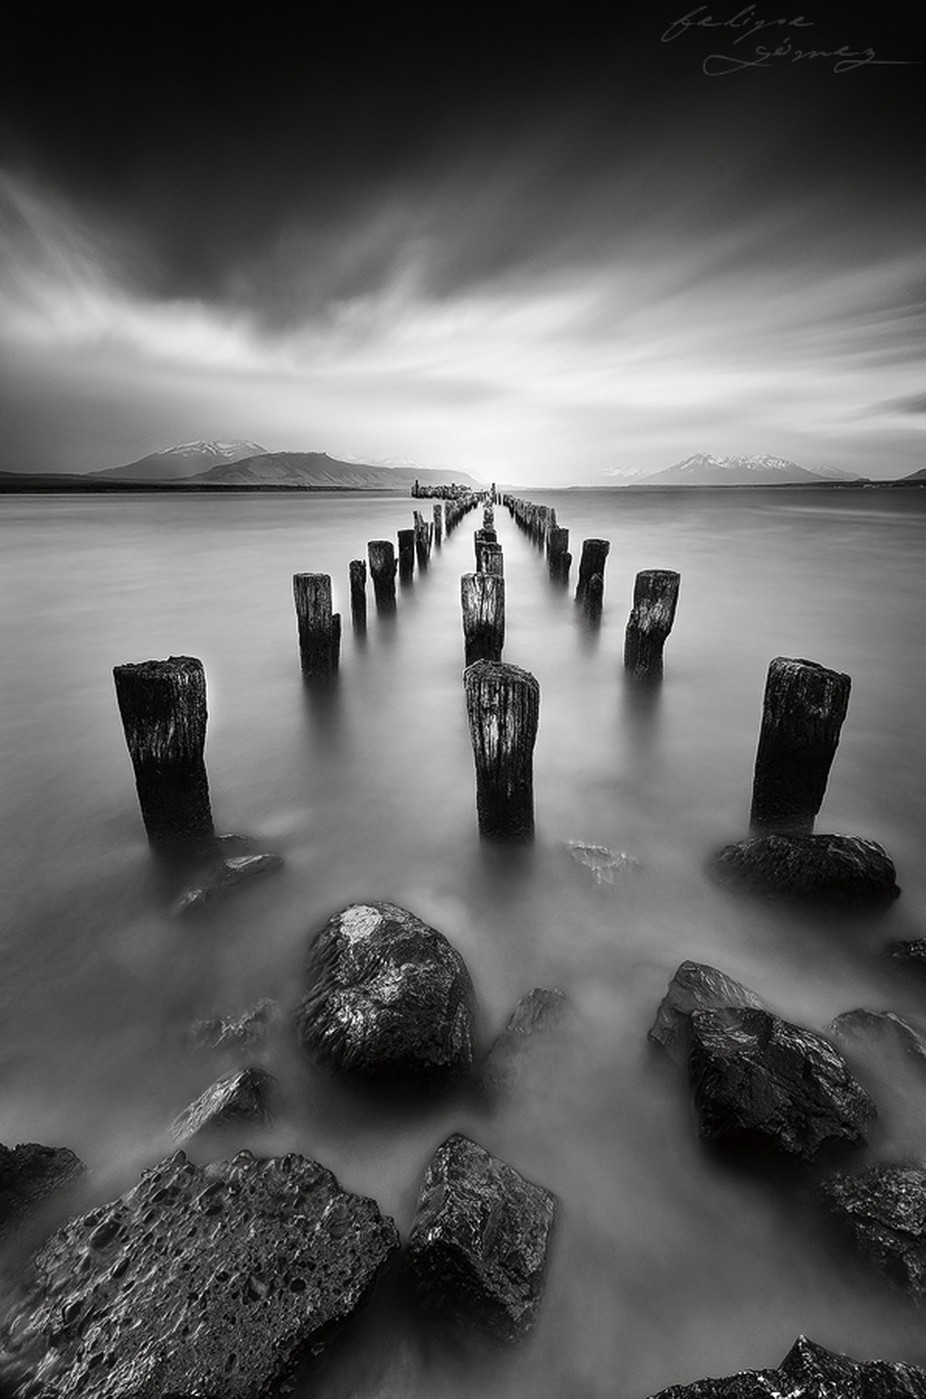 A long long wait by FGOphoto - A World In Black And White Photo Contest